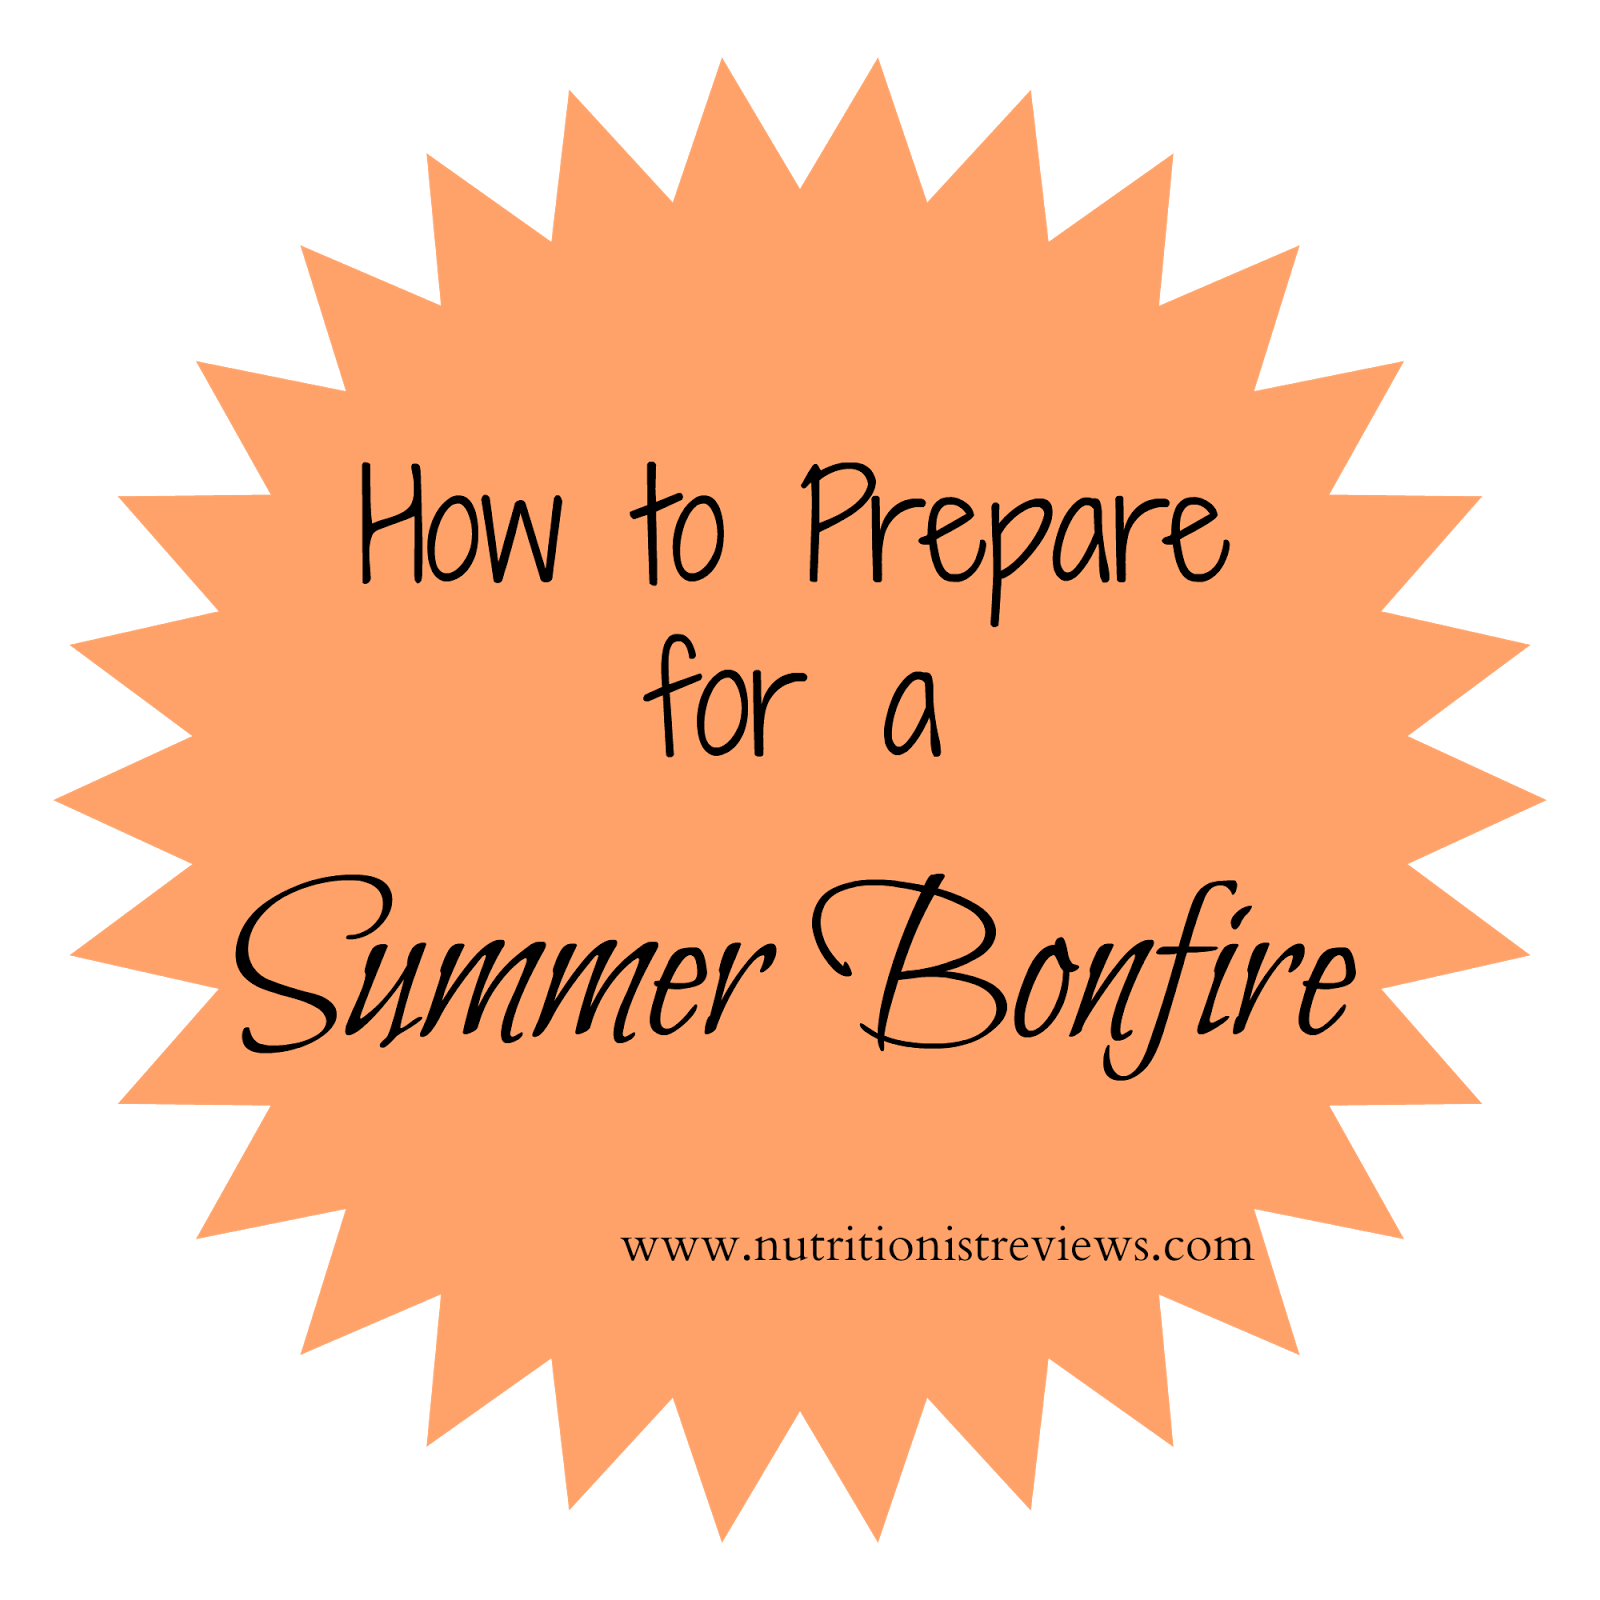 How to Prepare for a Summer Bonfire